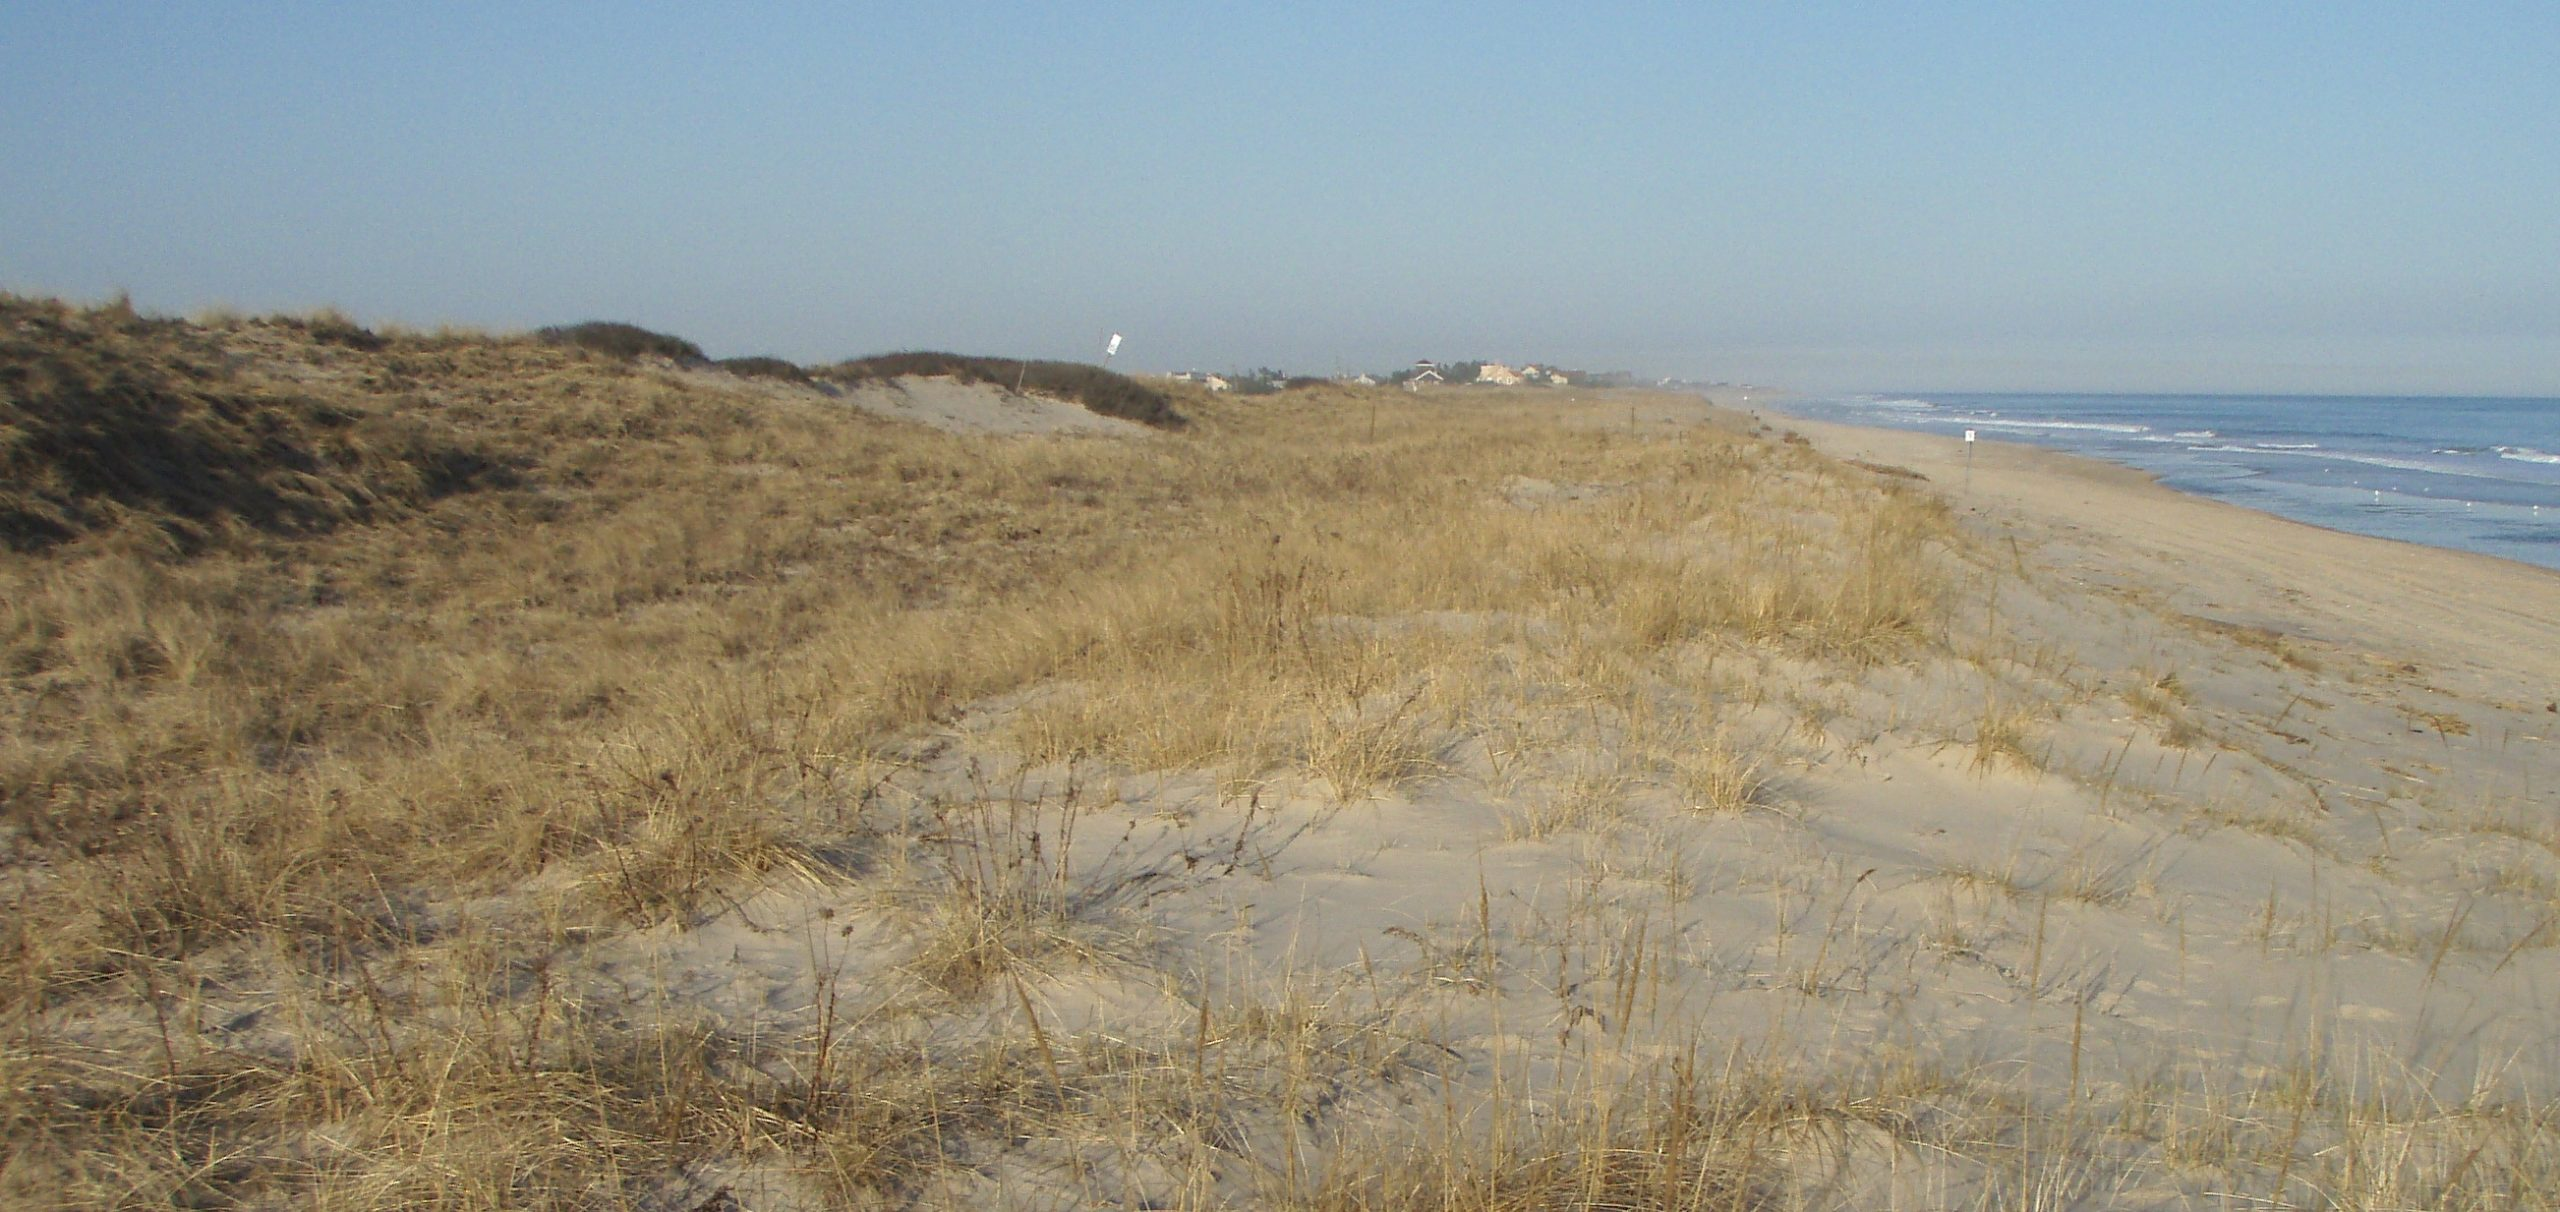 In some places, including this stretch of ocean beach in Amagansett, the shoreline and dune system has been accreting.